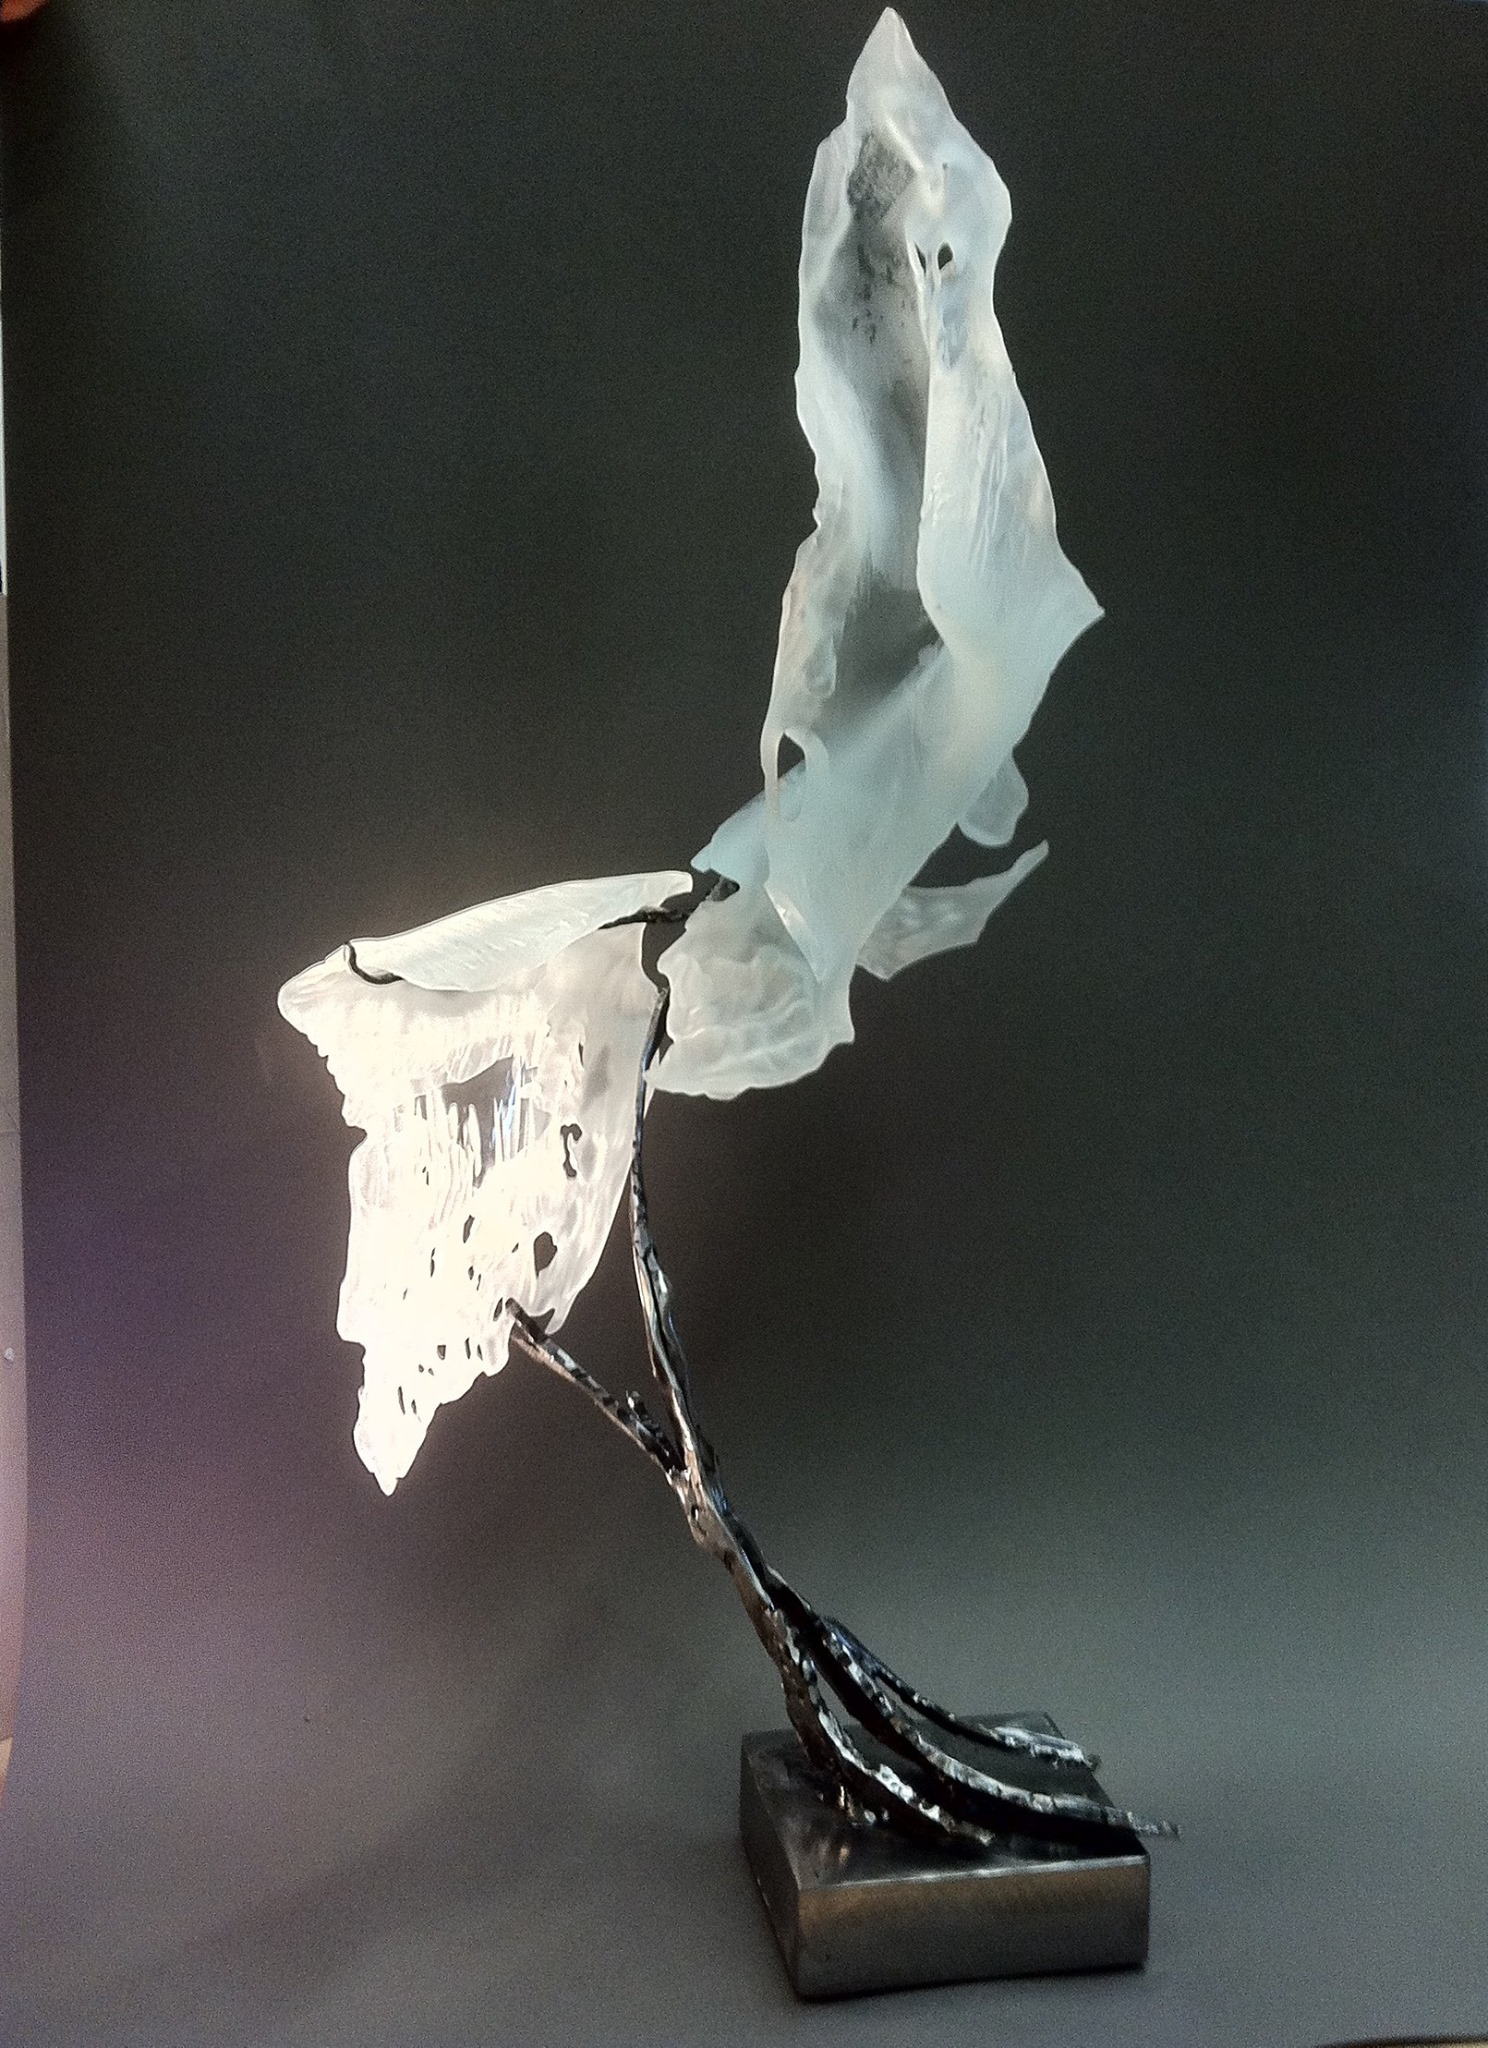 Etched glass sculpture art people gallery